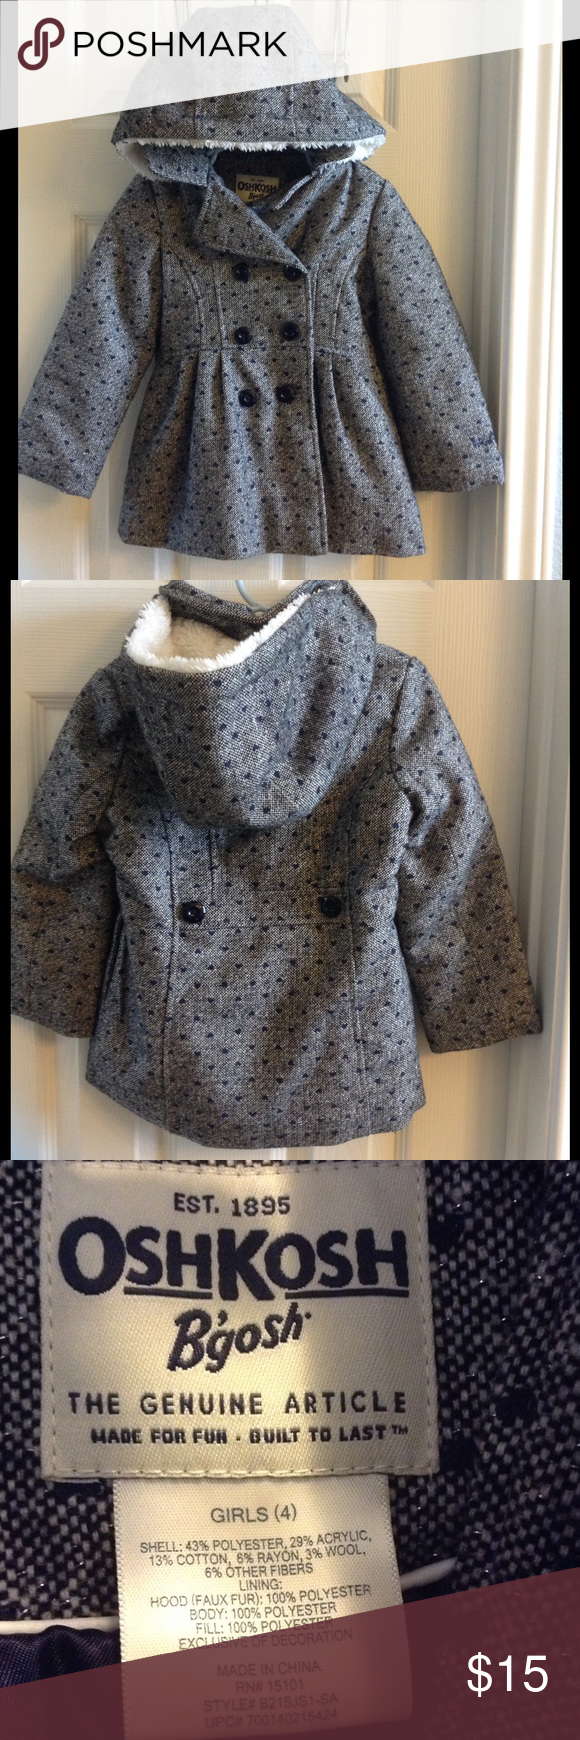 Blue and White hooded girls coat Navy blue tiny hearts with white fuzzy hood interior. Button up - no zipper. Excellent condition. Very warm. Osh Kosh Jackets & Coats